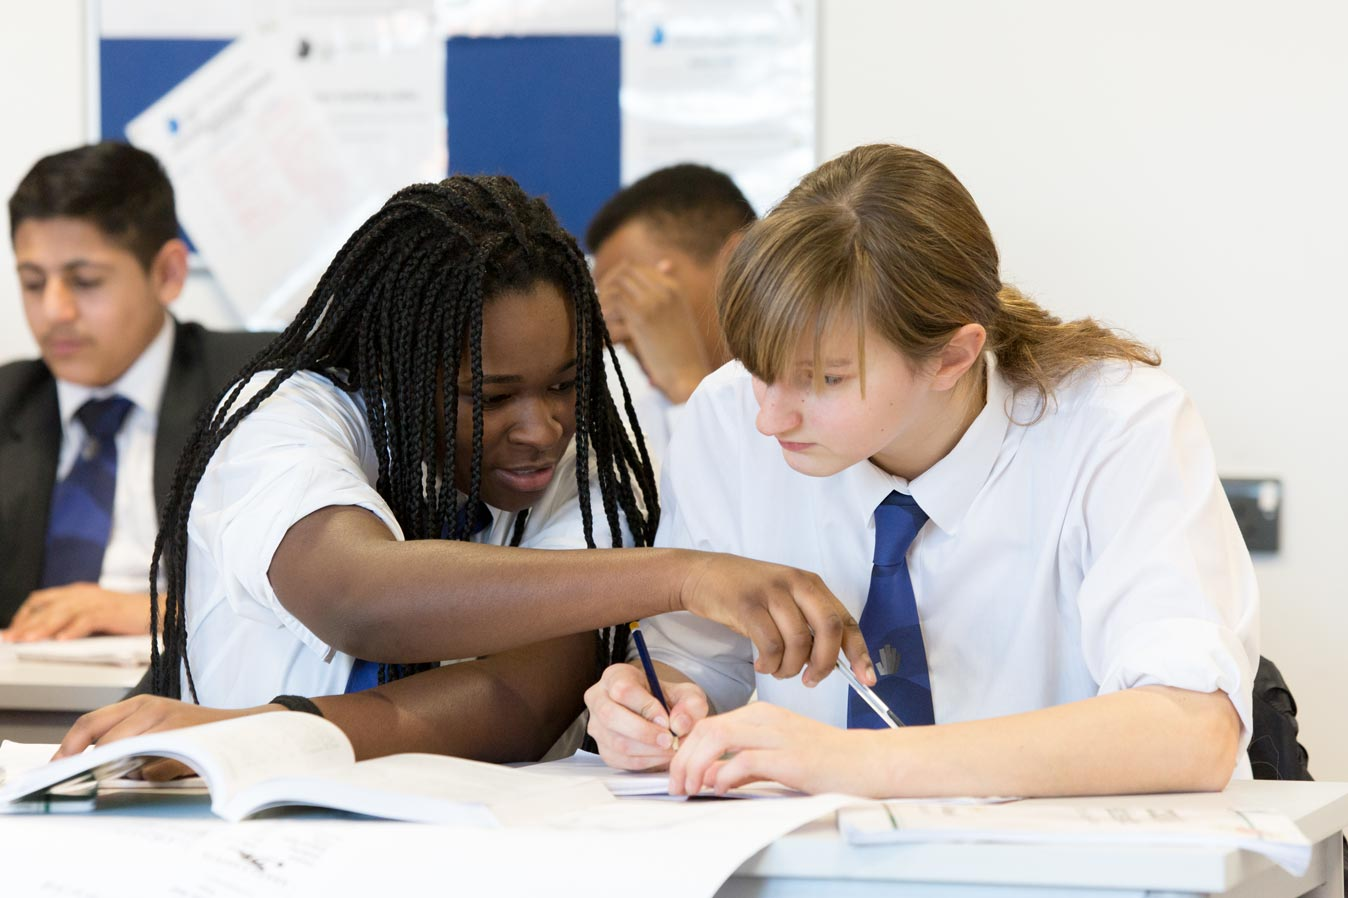 UTC students in working together in class room